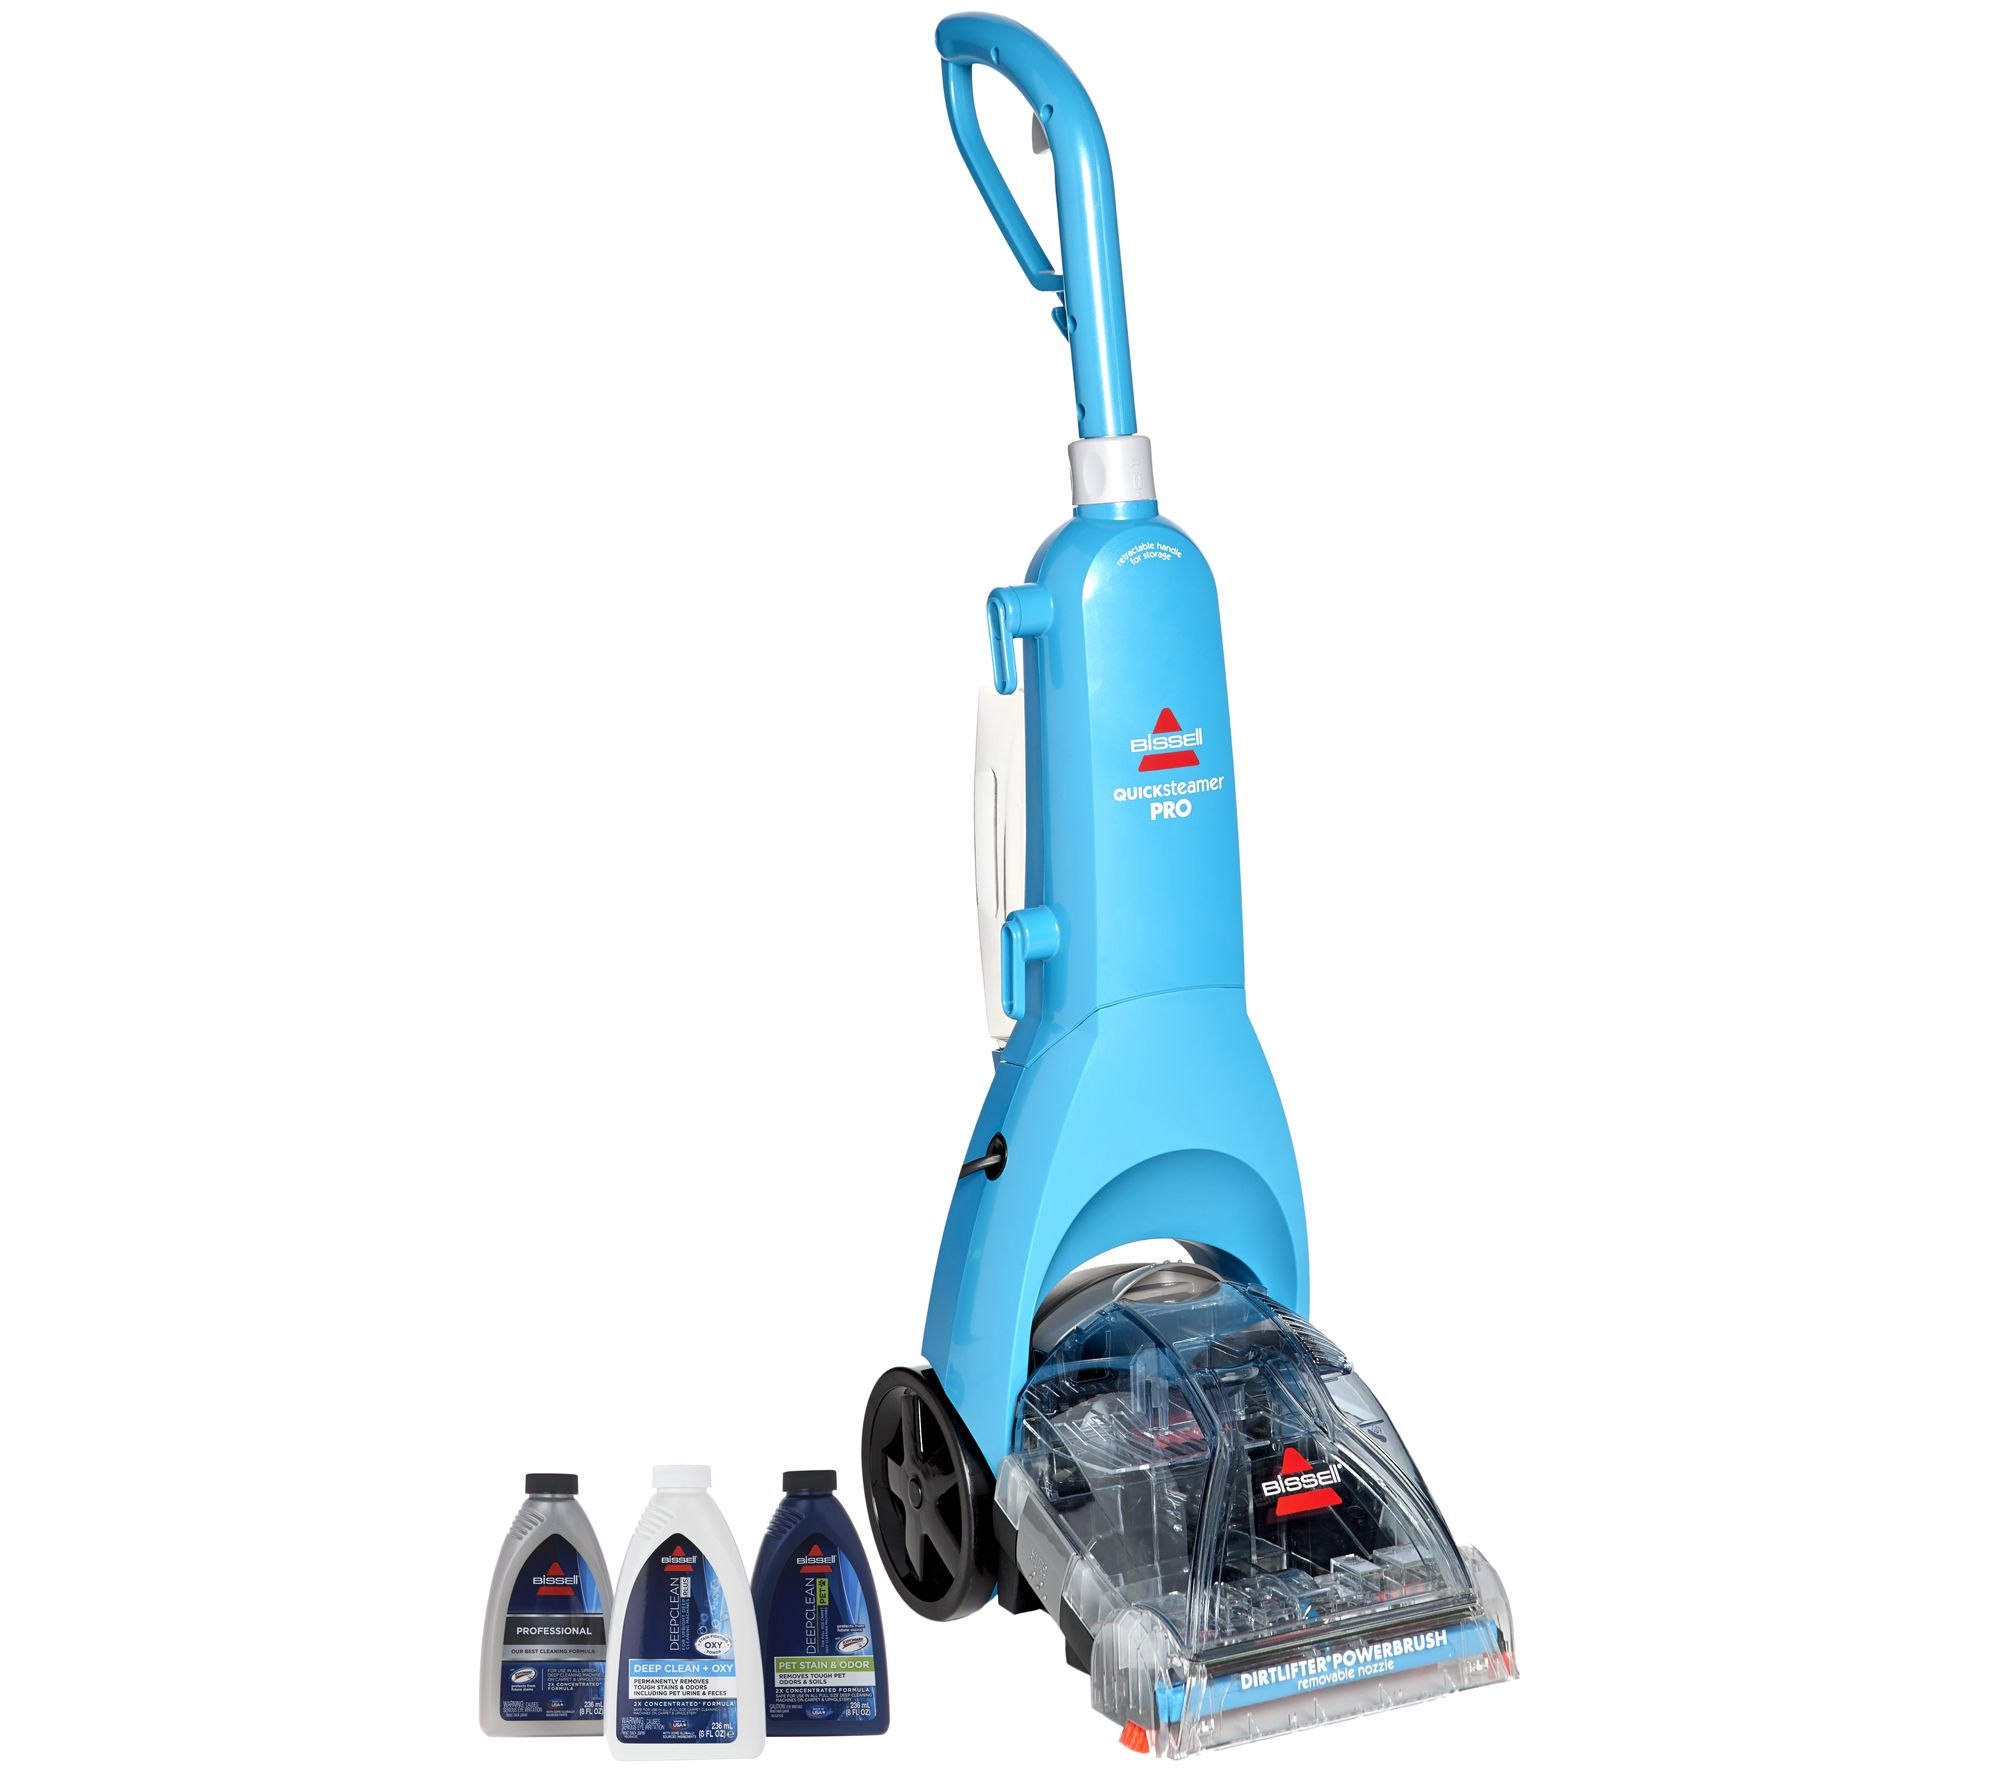 bissell pro deep clean carpet cleaner w 3 formulas page 1 u2014 qvccom - Carpet Shampooer